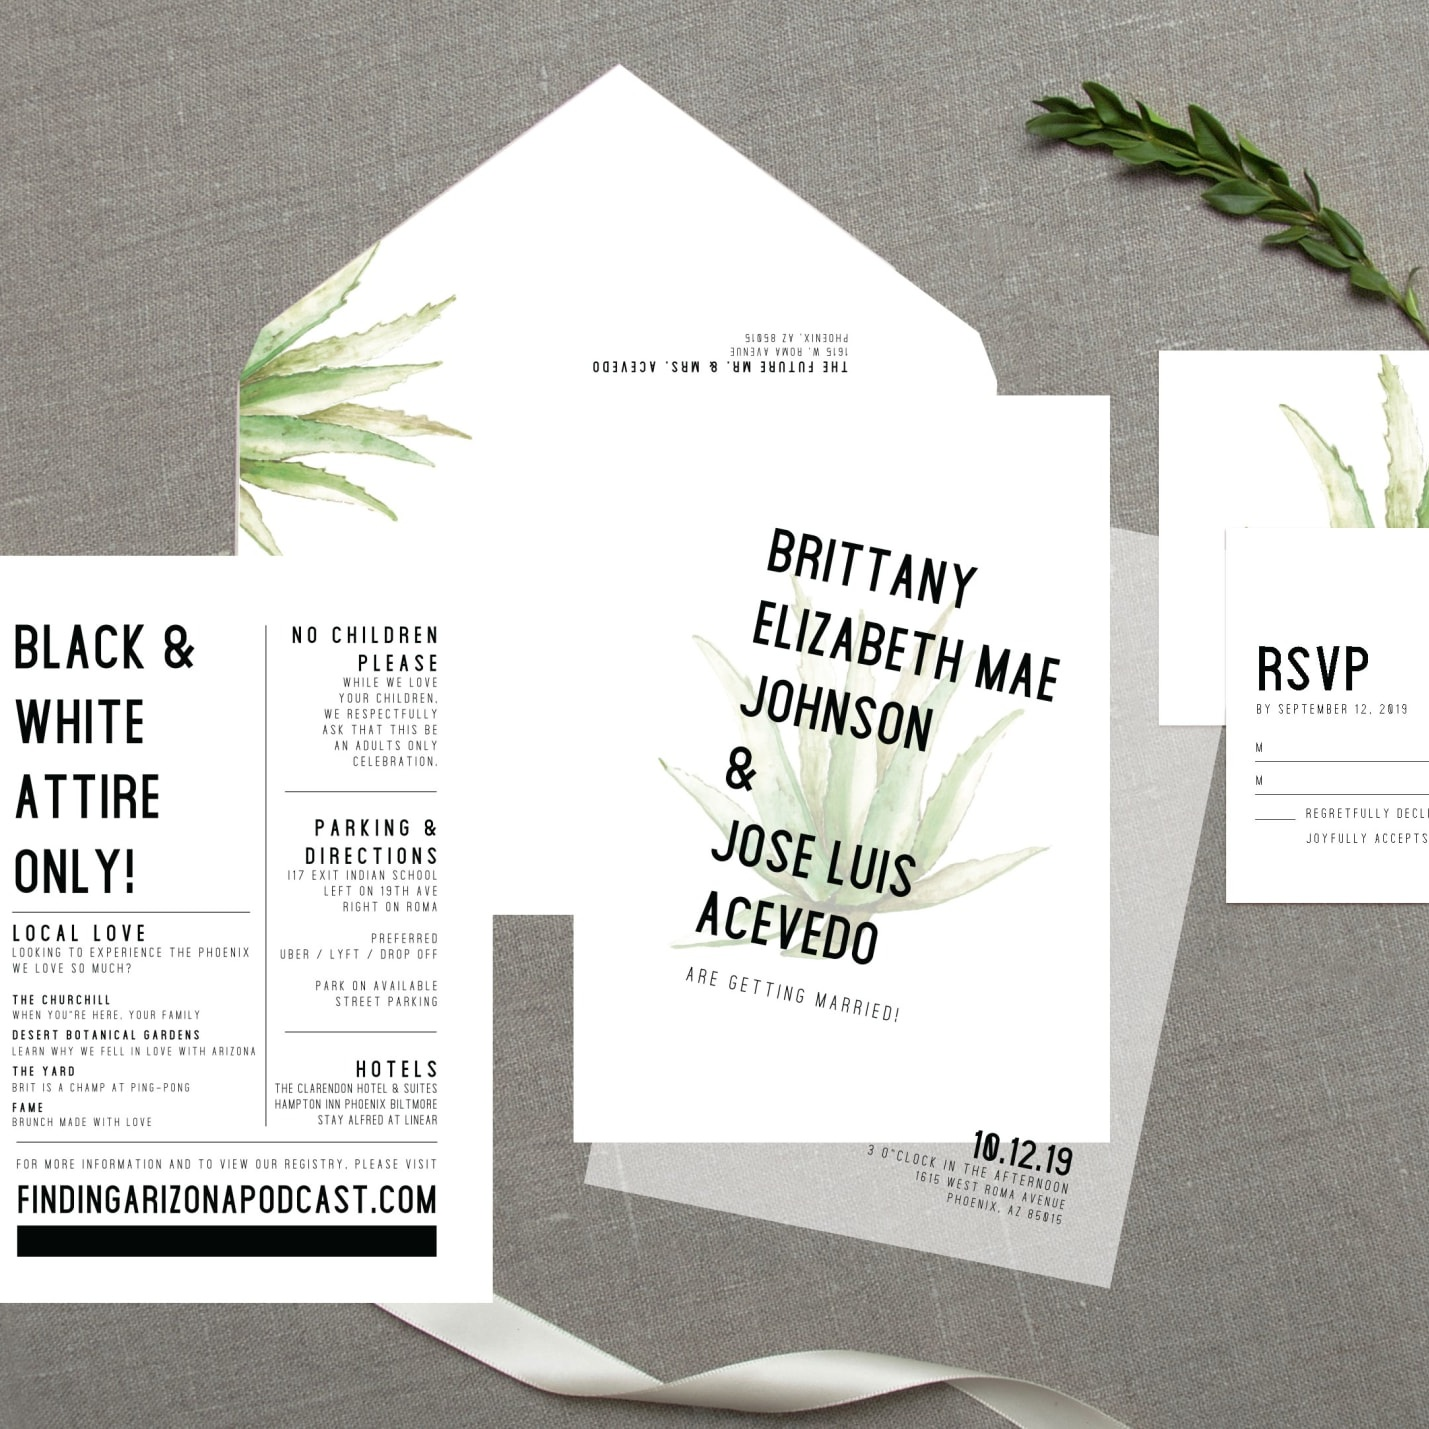 DESIGN SQUEEZE INVITATION TIME - Learn how Design Squeeze made THE invites OF OUR DREAMS come to life.